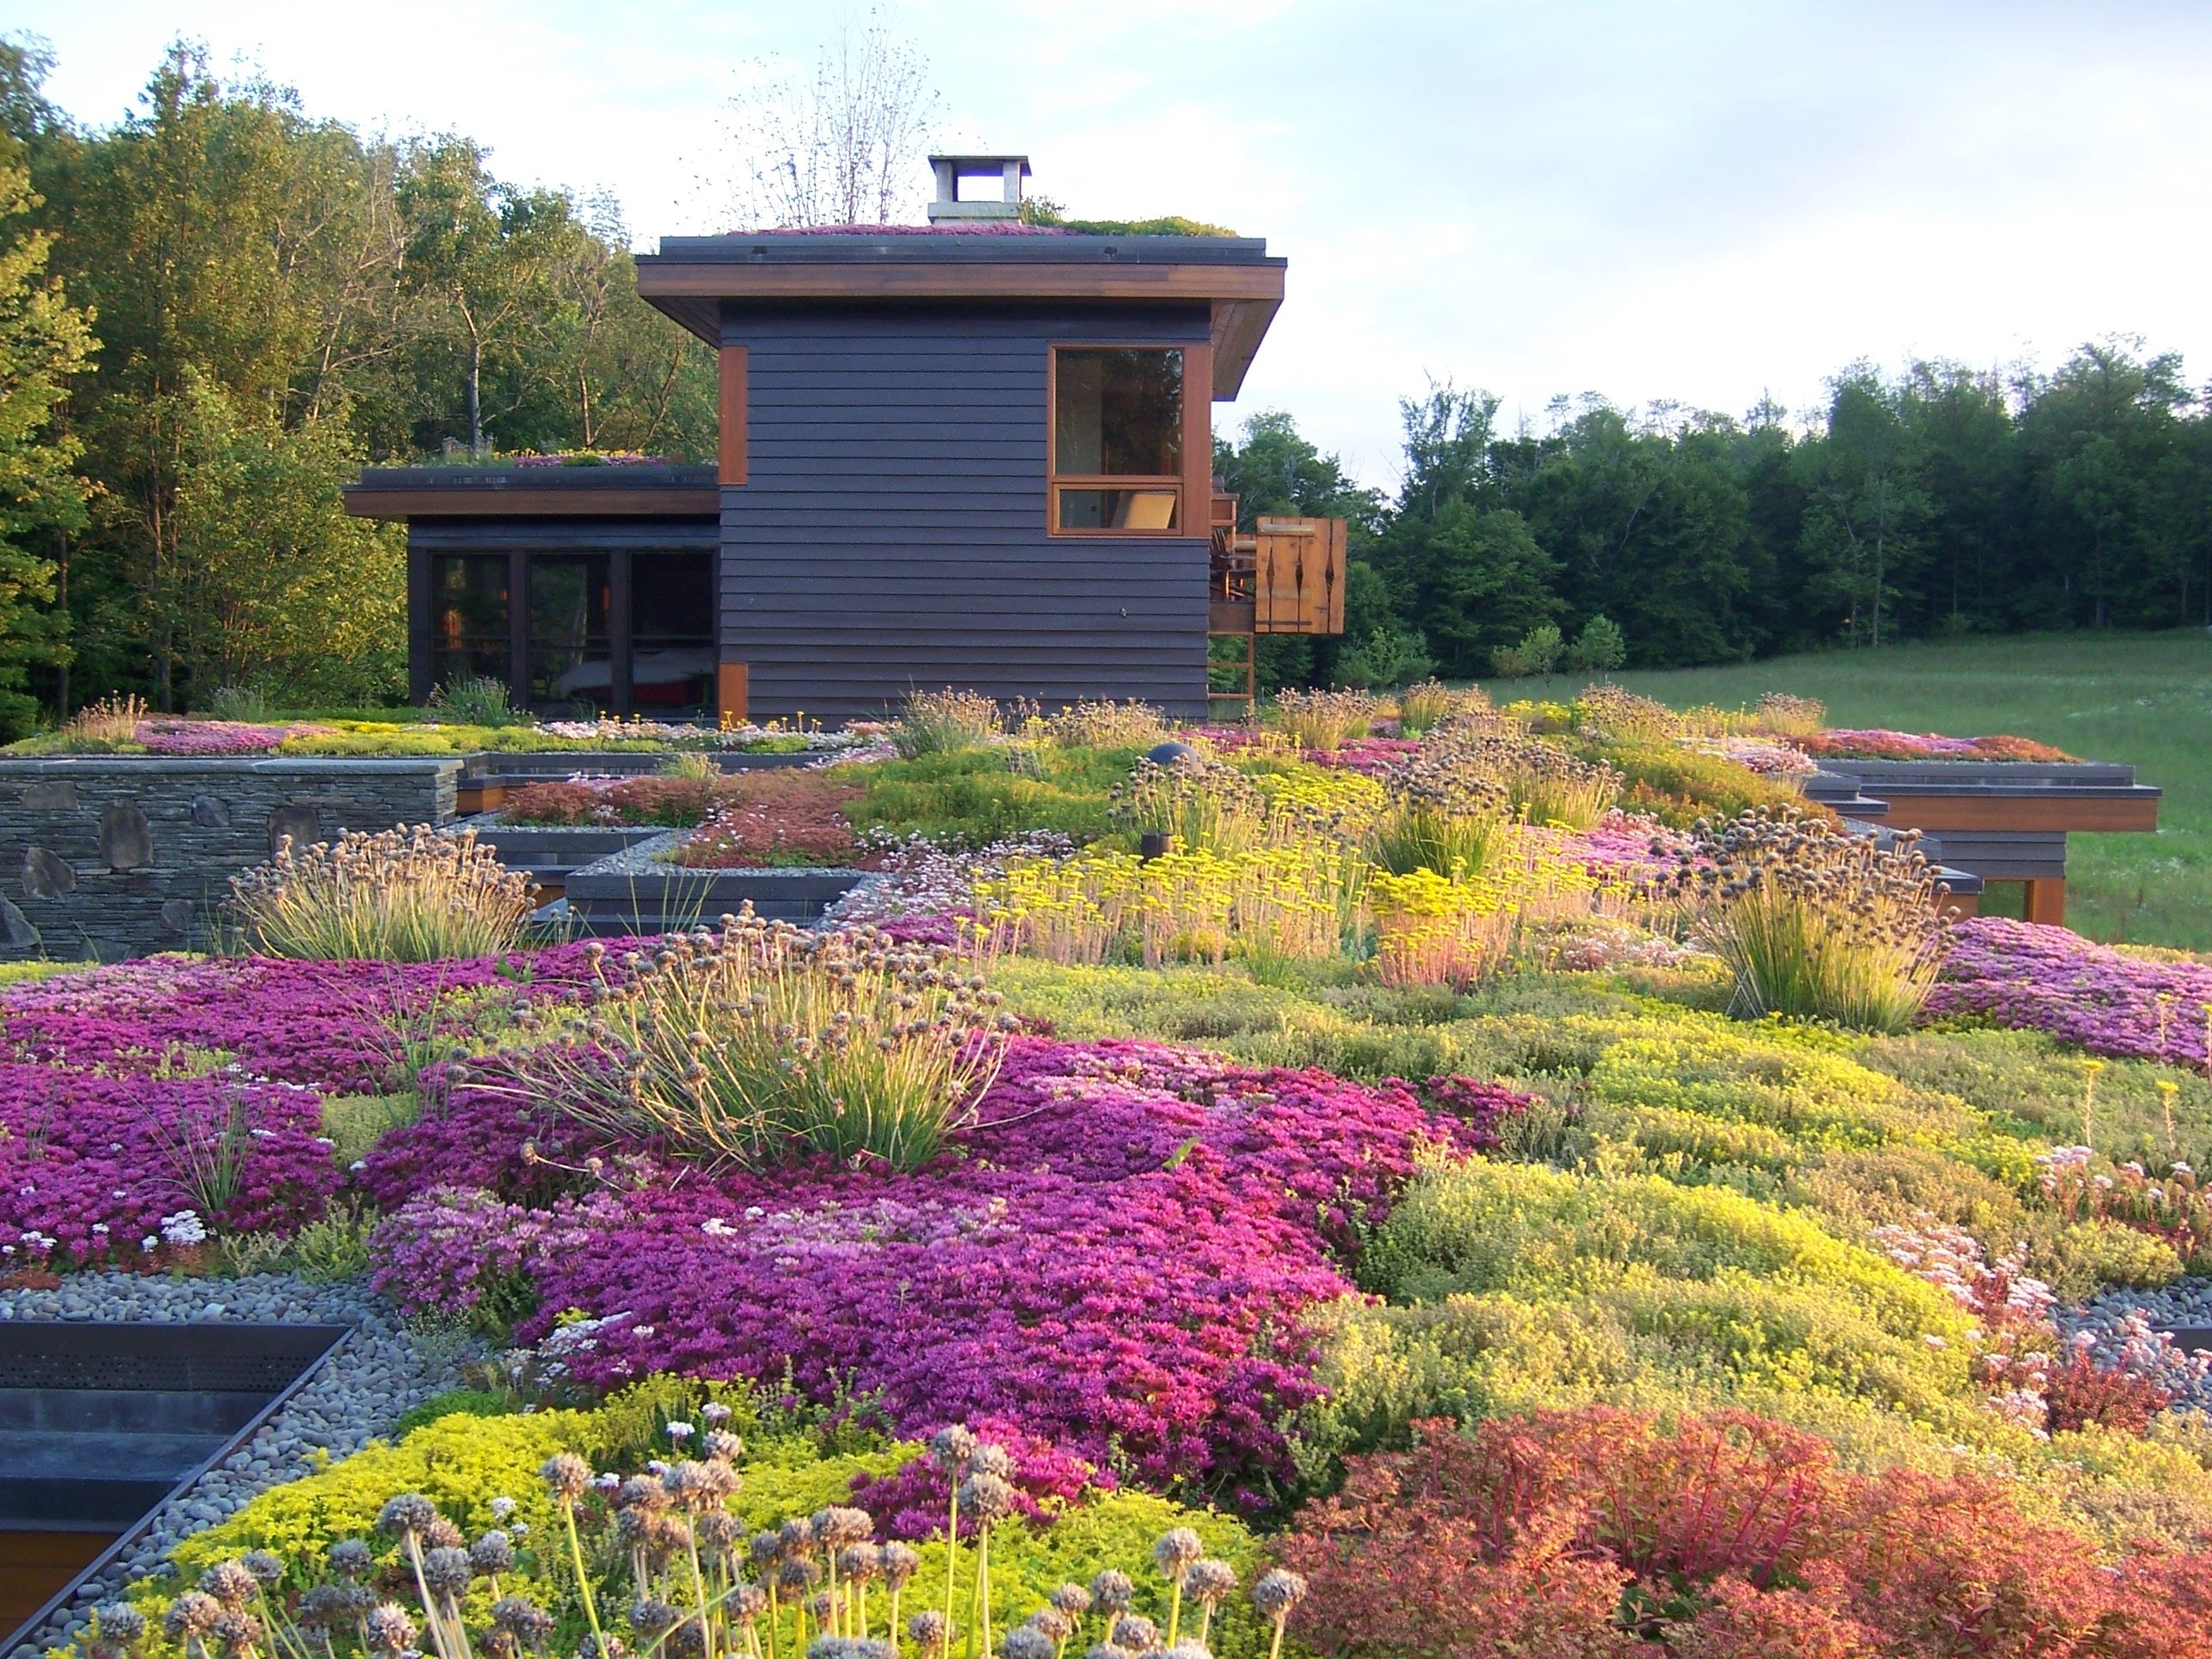 Vote Longdrive Residential Green Roof, Long Eddy, New York, USA! Located On